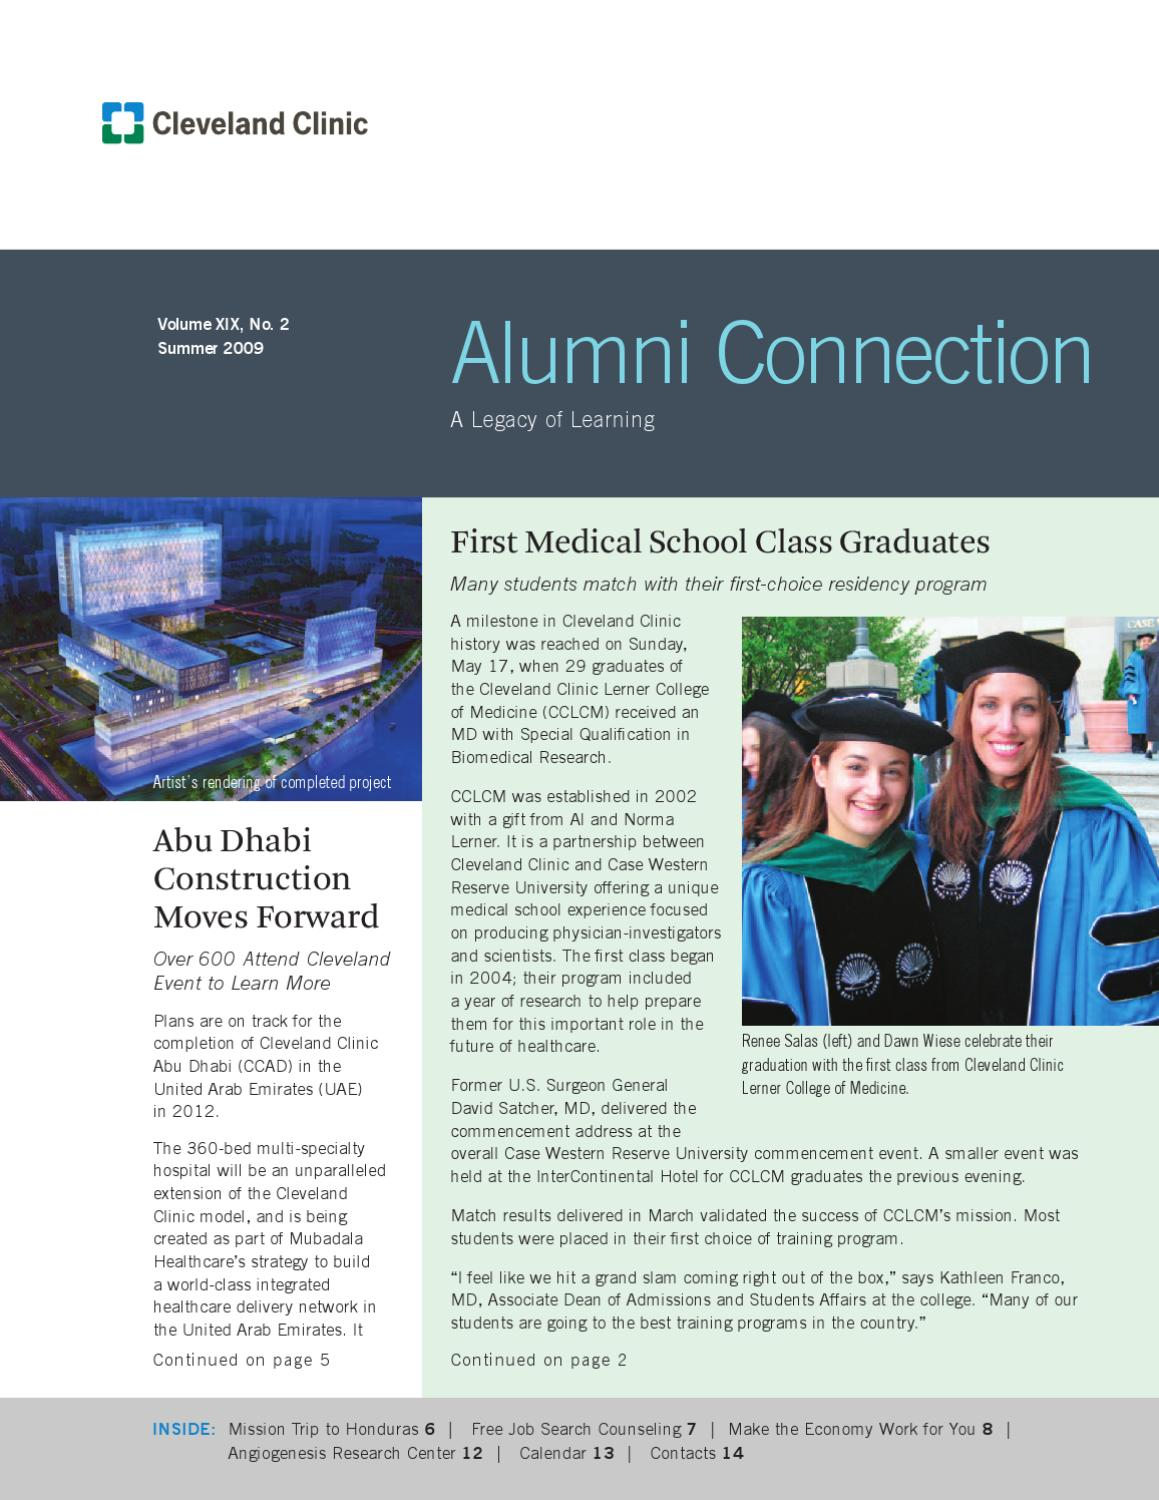 Cleveland Clinic Alumni Connection - Vol  XIX No  2 by